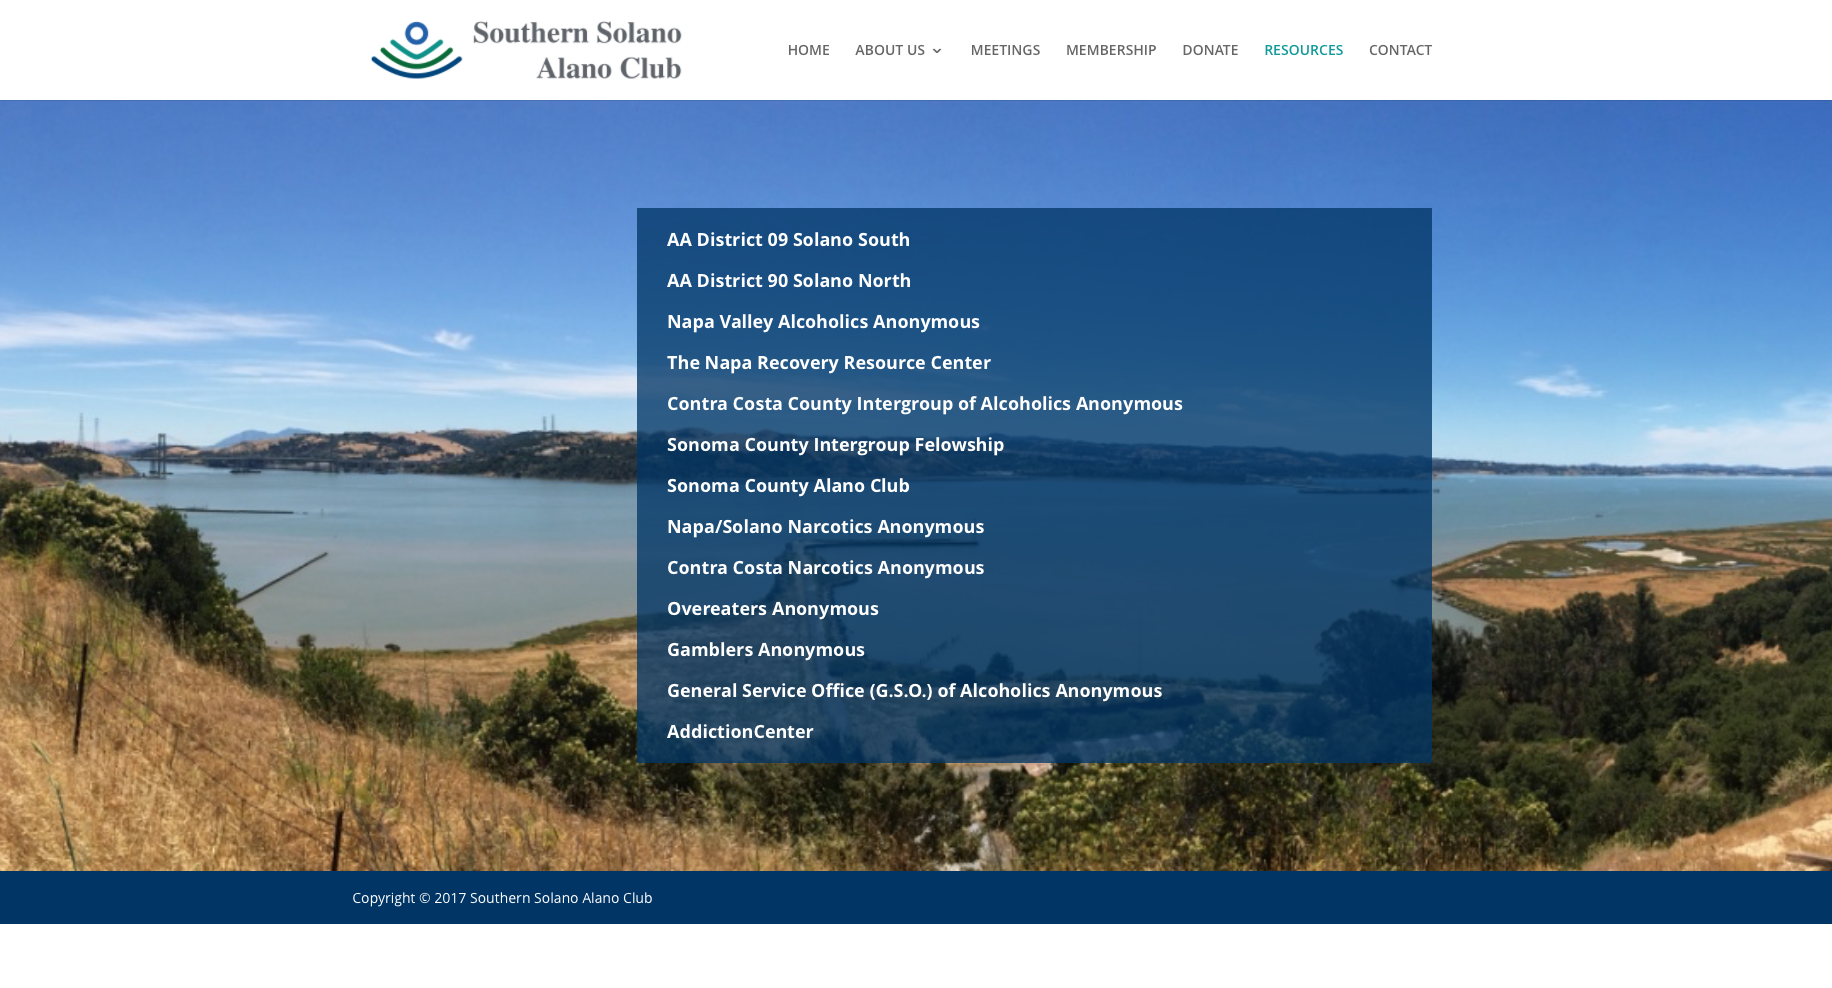 Southern Solano Alano Club Website